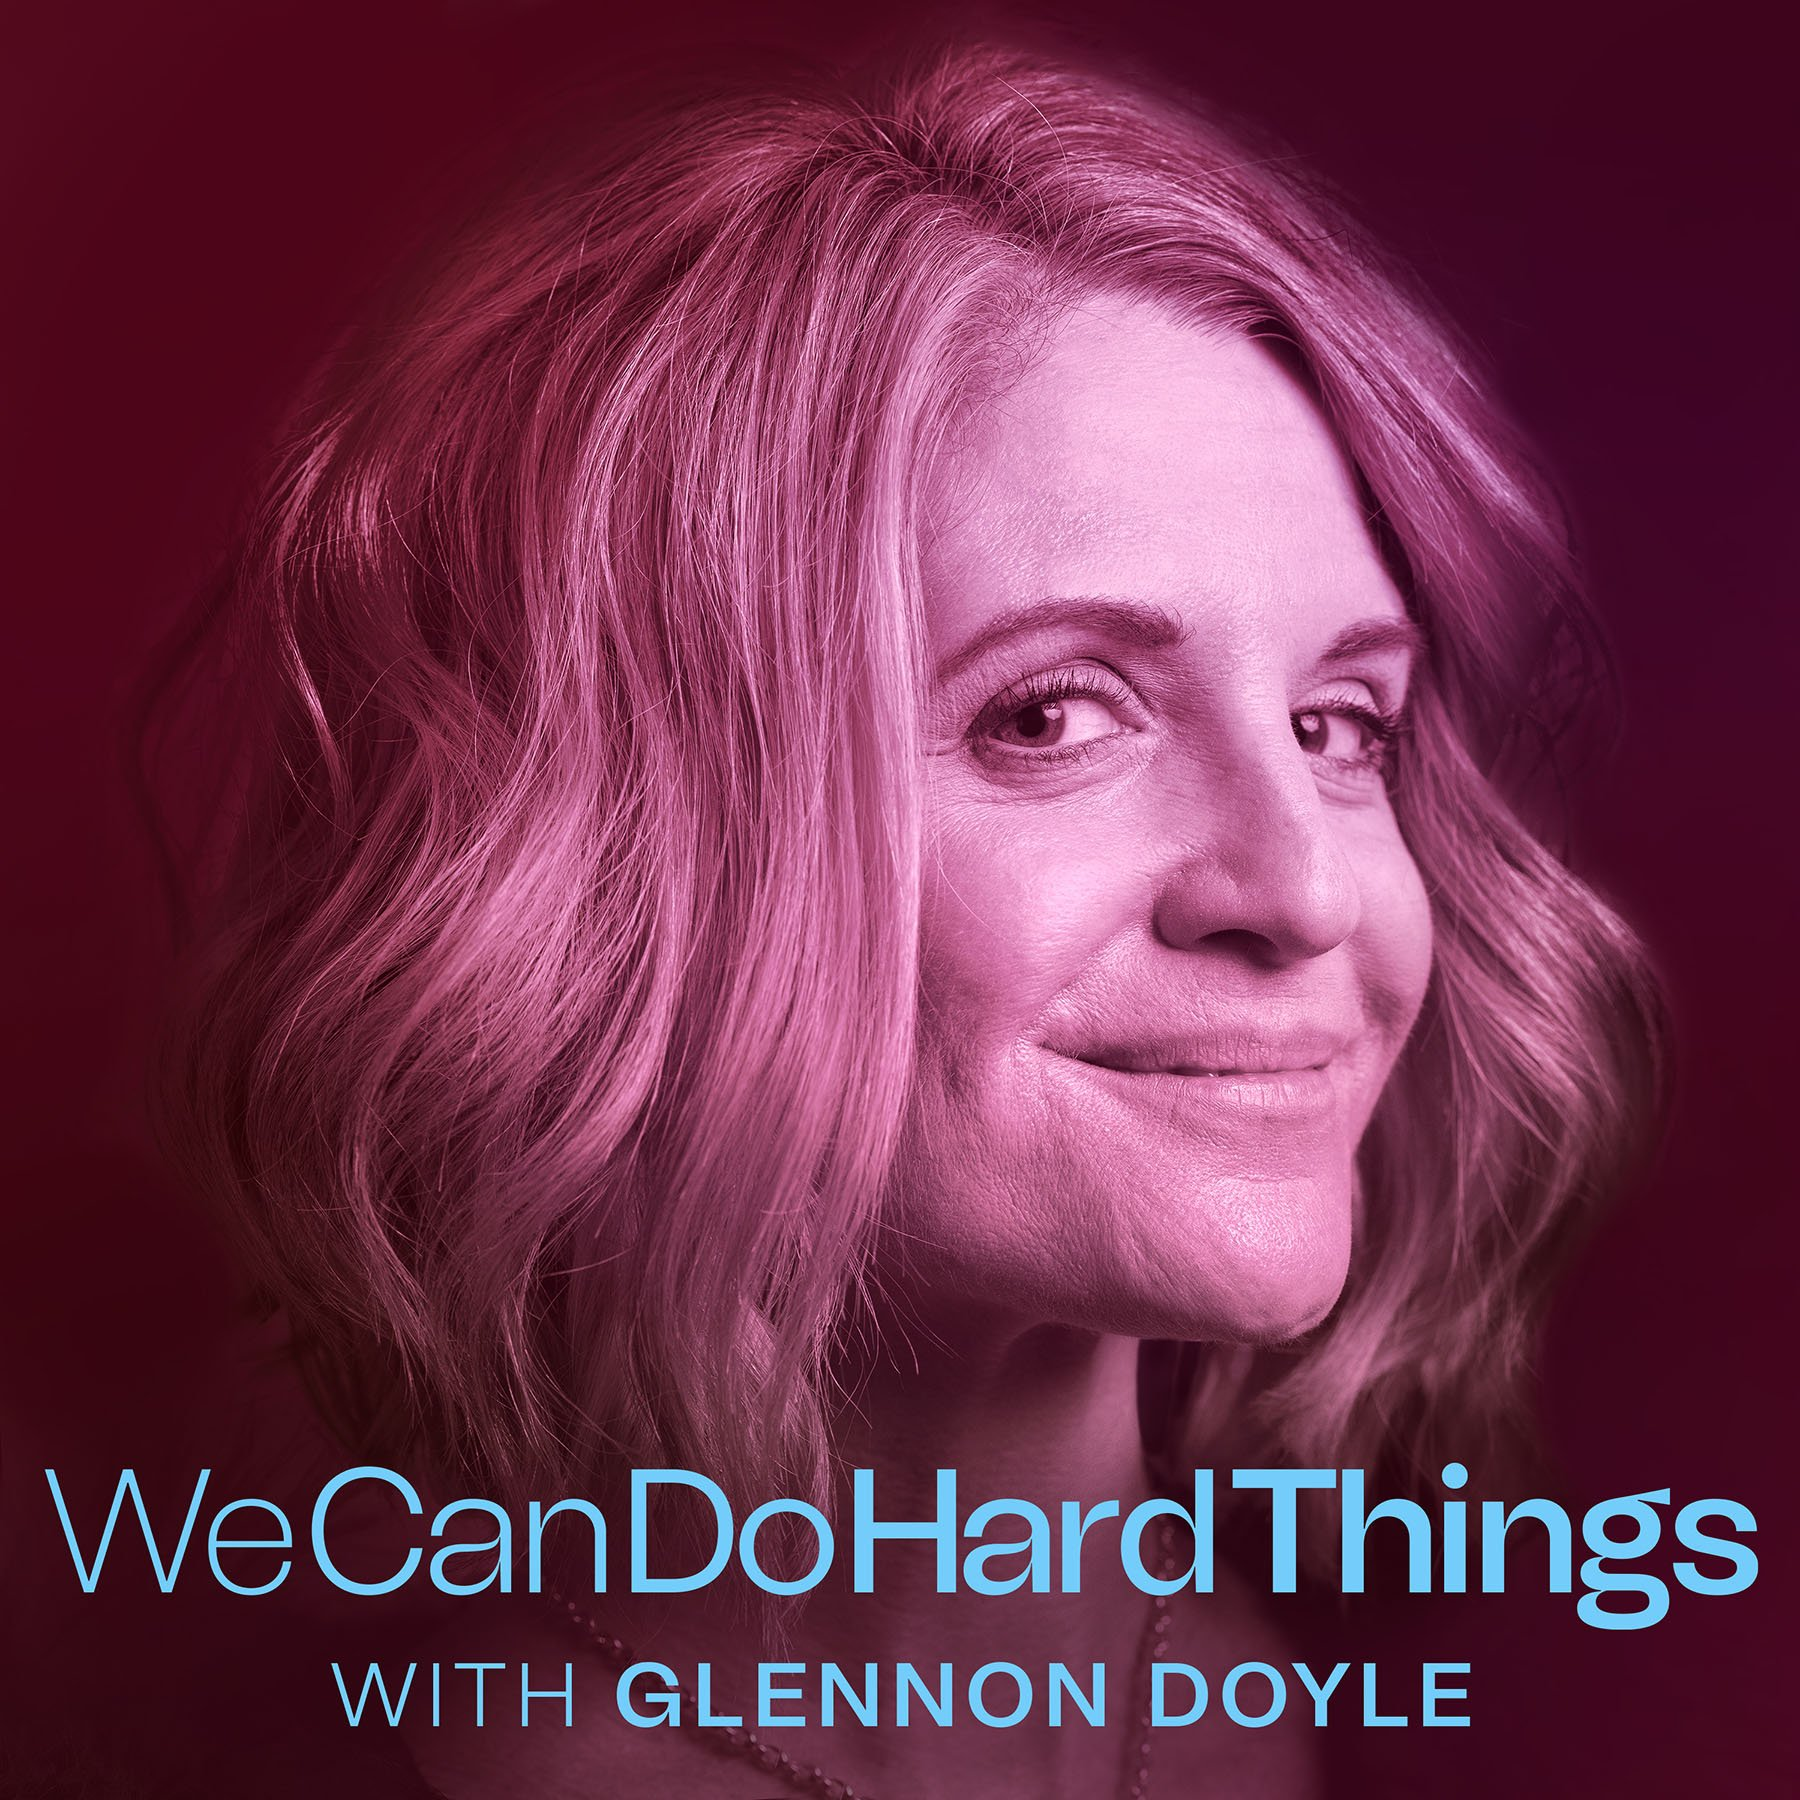 we can do hard things with glenonn doyle